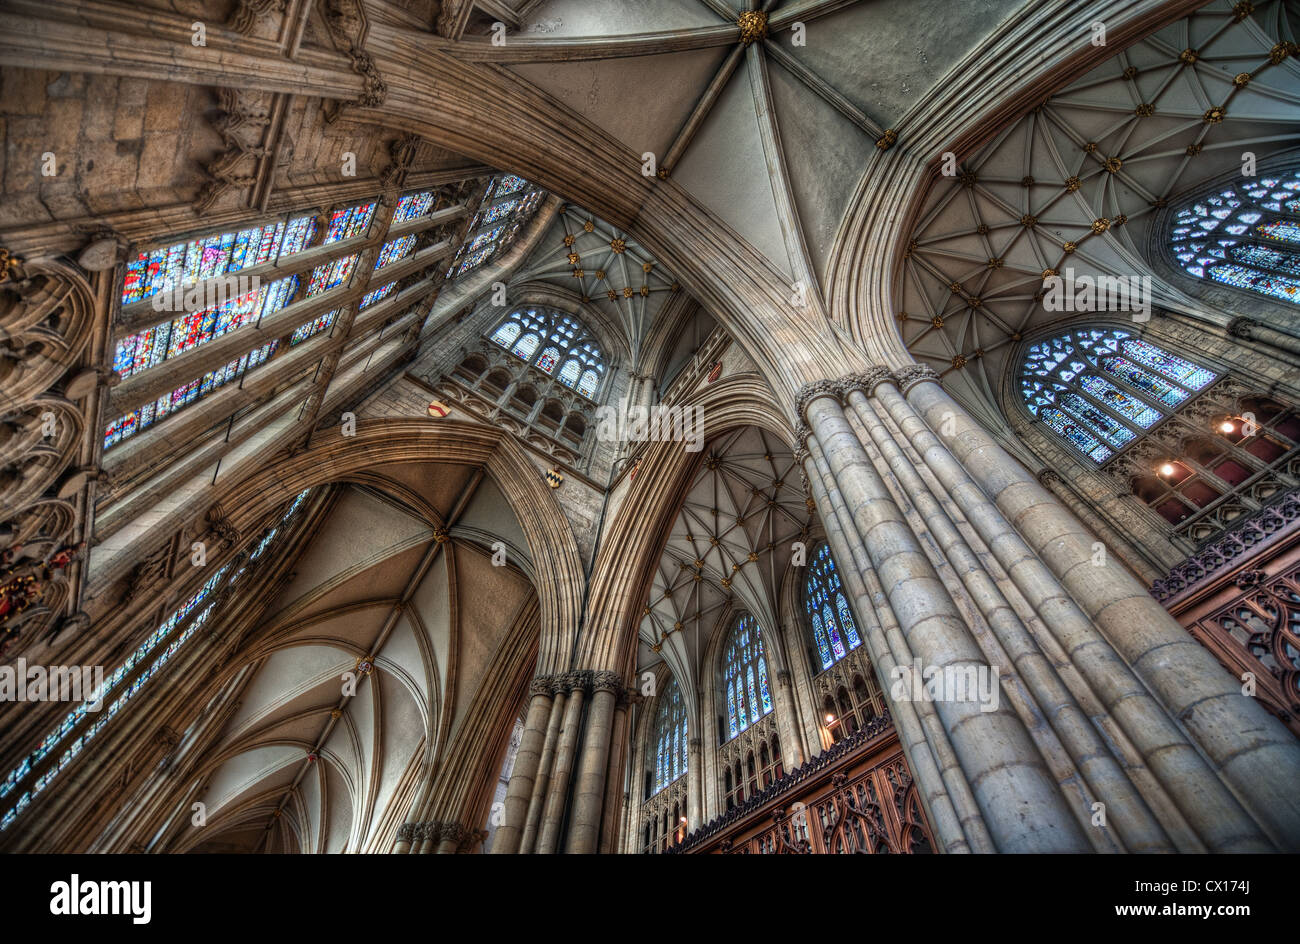 Ribbed Vaulting Elaborate Tracery And Stained Glass Windows Characteristic Of Gothic Architecture In Leeds Cathedral England